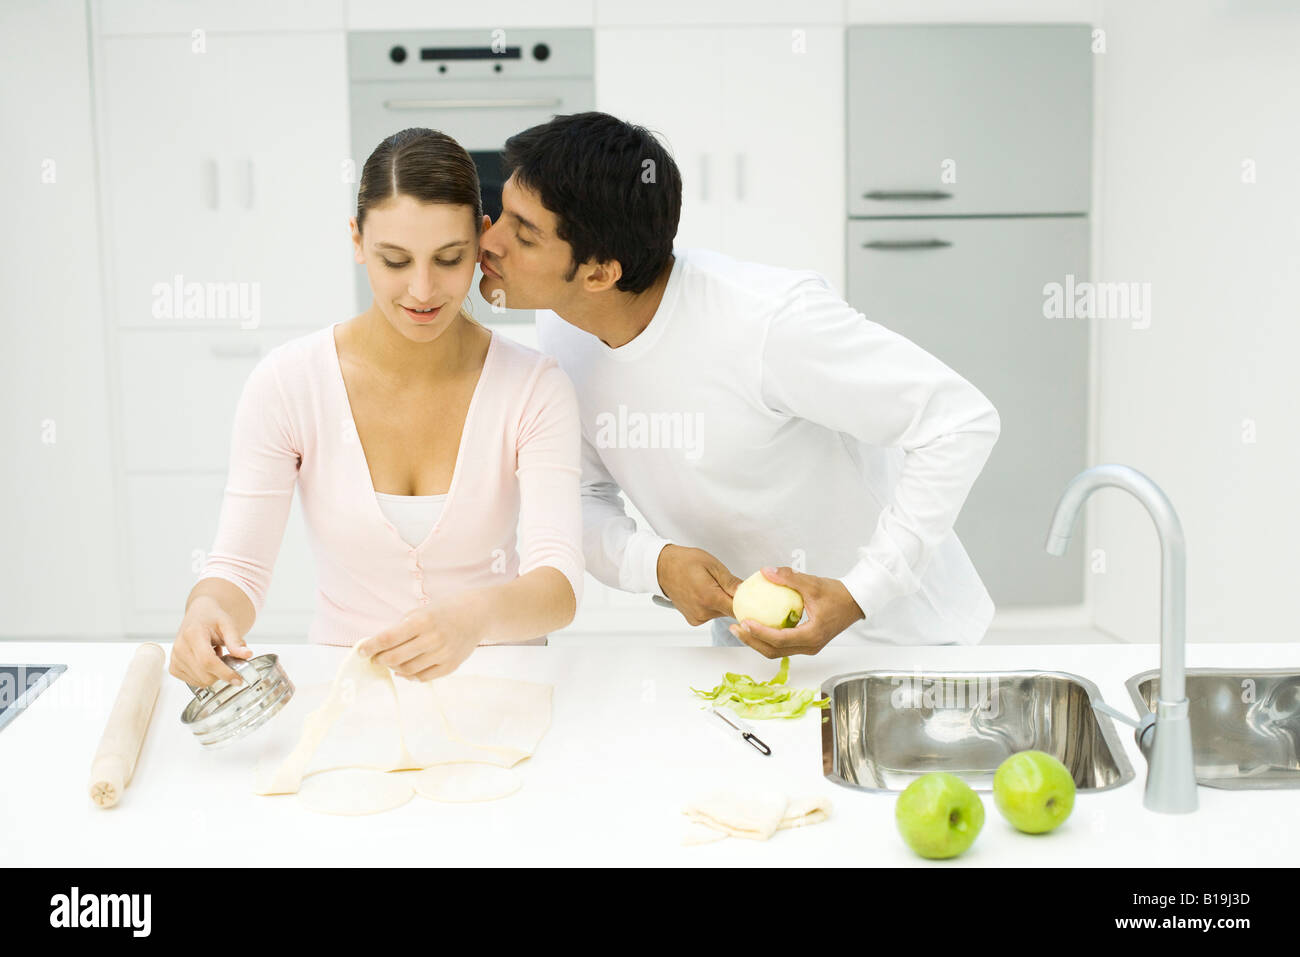 Couple cooking together, man kissing woman's cheek - Stock Image